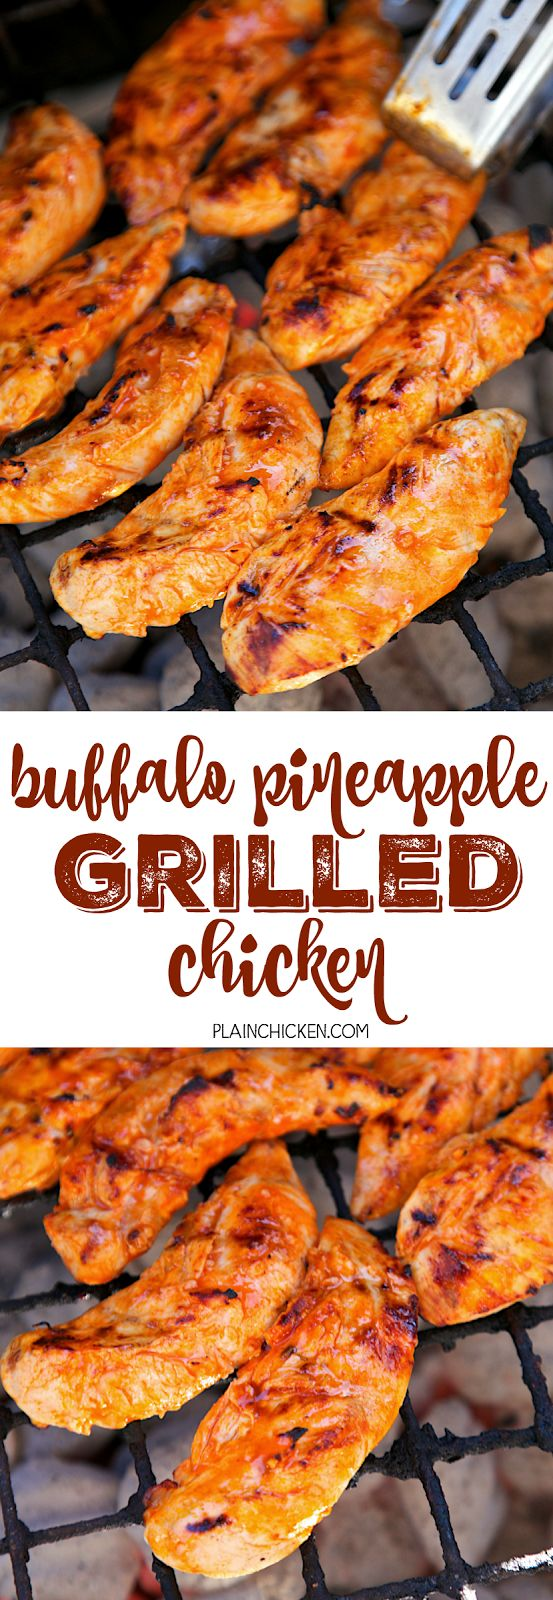 Buffalo Pineapple Chicken - chicken marinated in buffalo sauce and pineapple juice - grill, pan sear or bake for a quick weeknight meal. A little spicy, a little sweet and a whole lotta delicious! Ready to eat in 15 minutes!